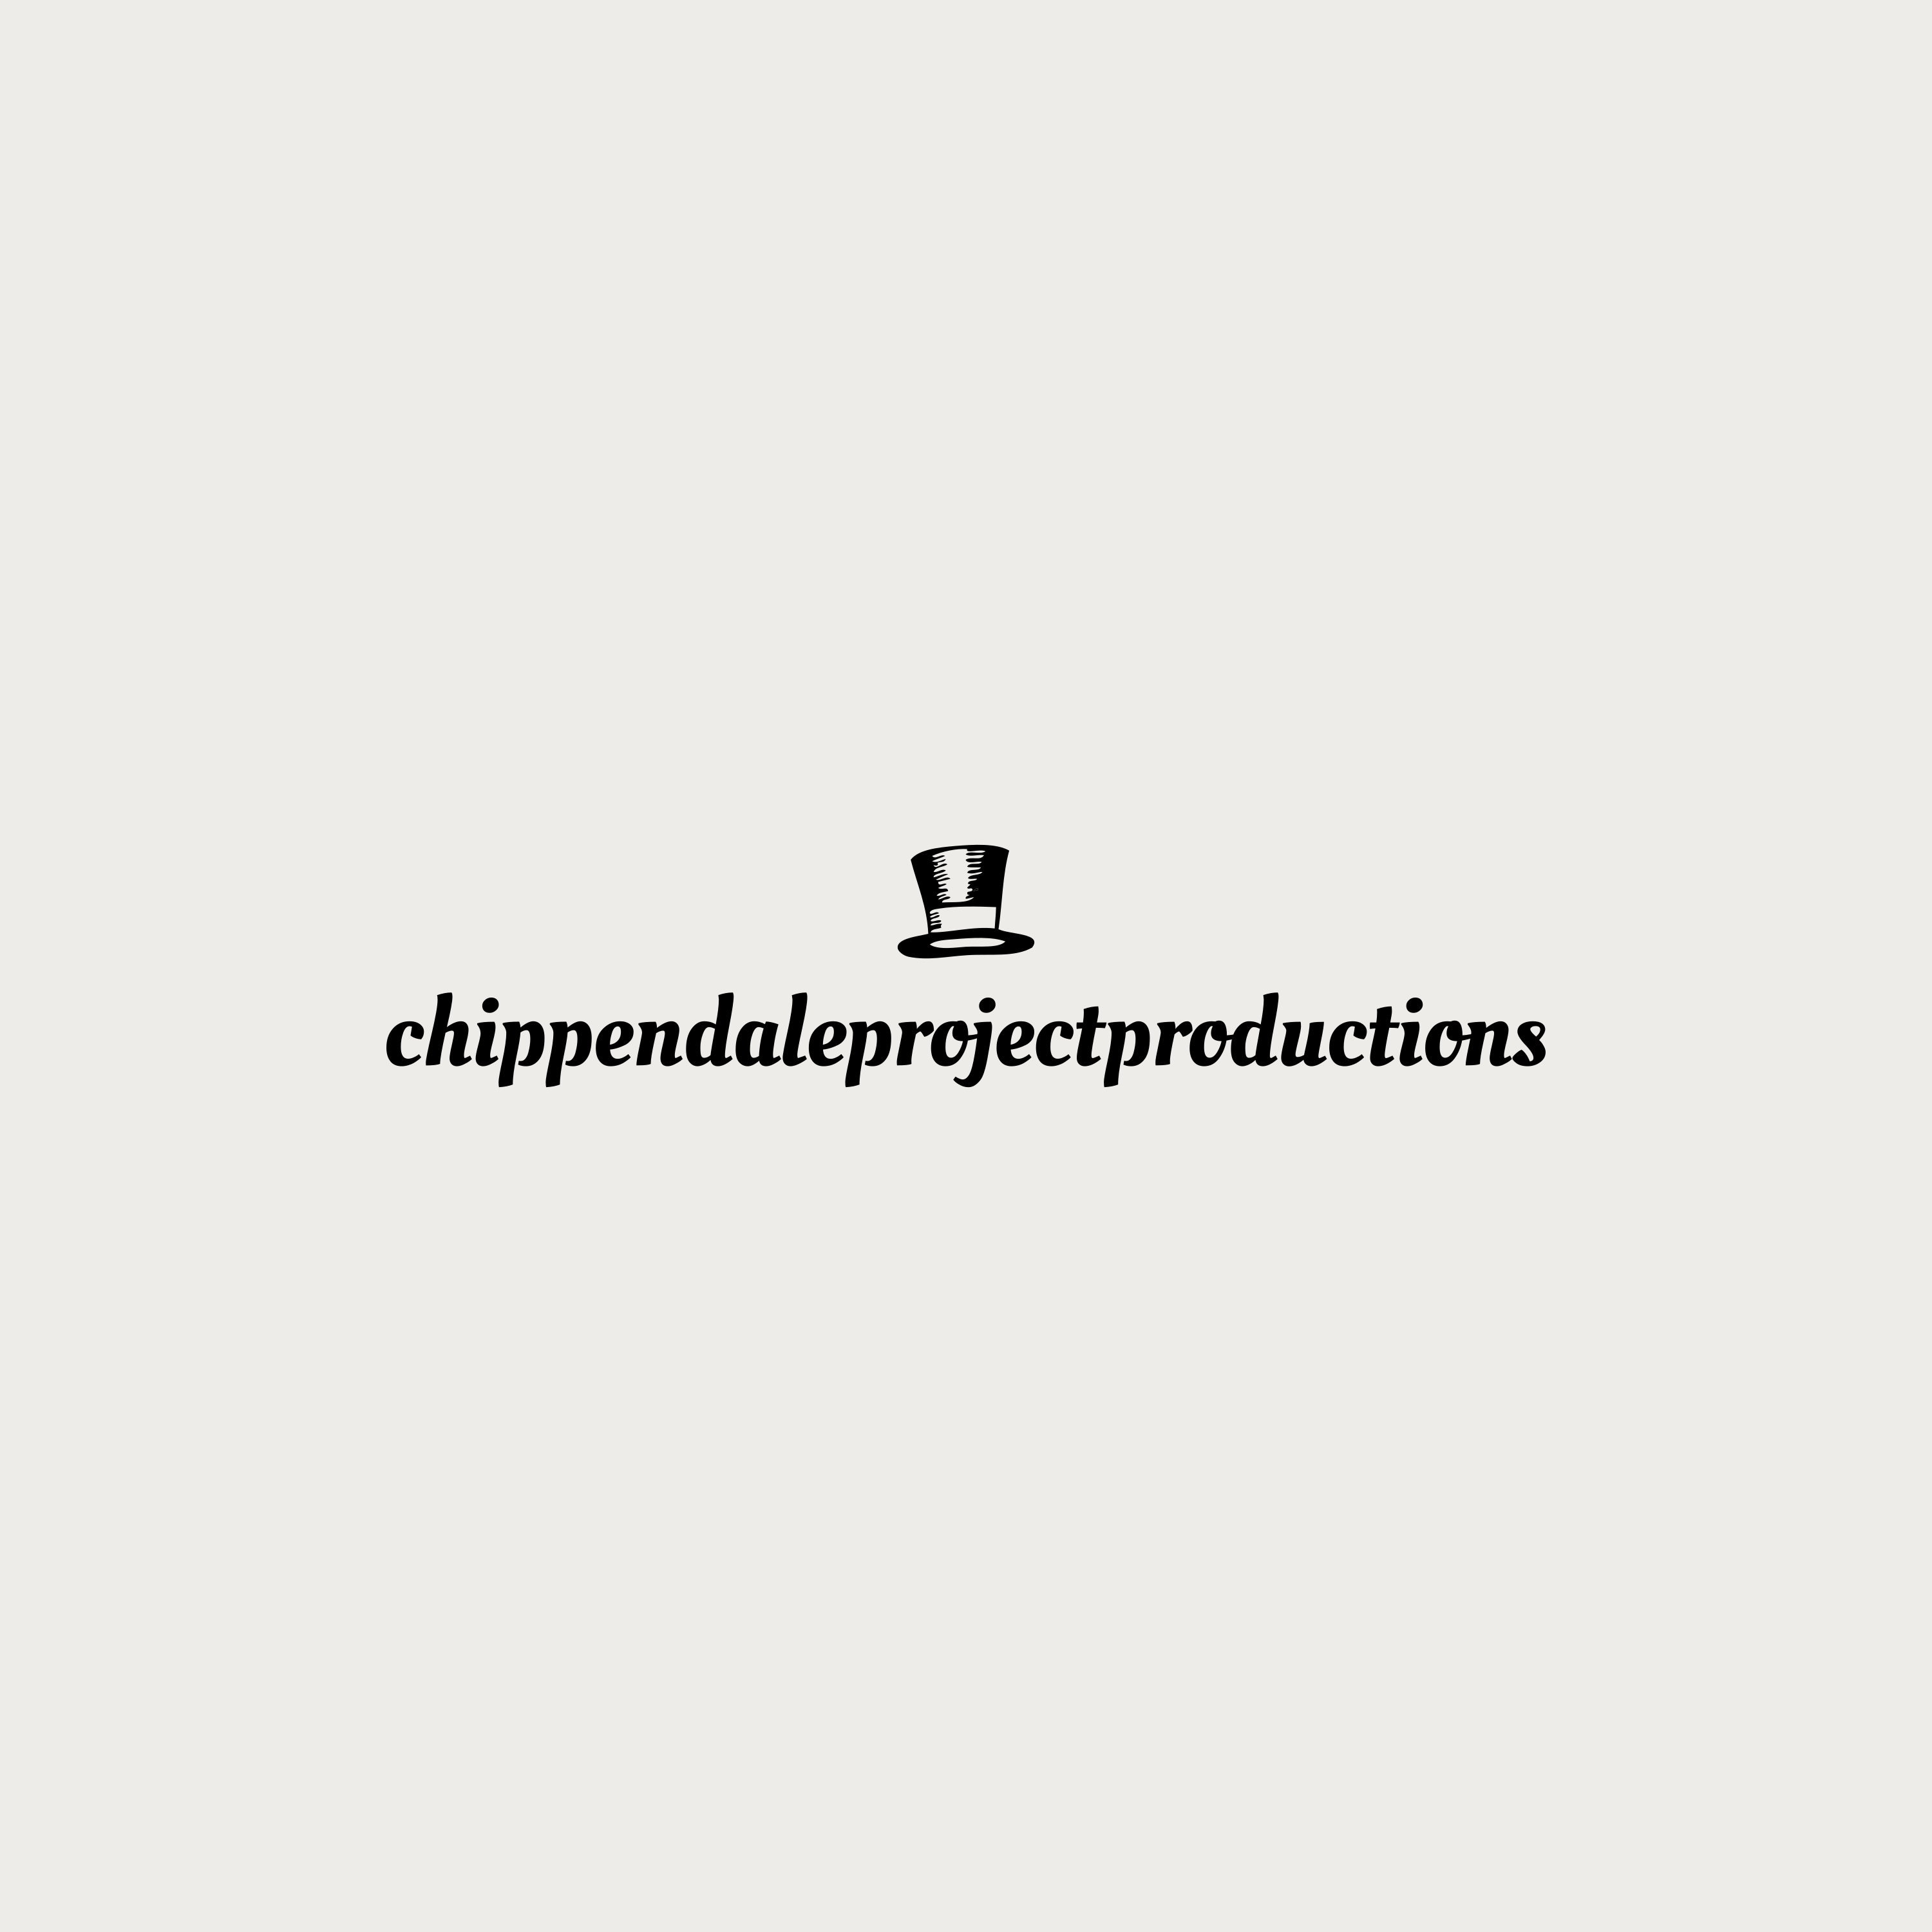 chippendaleprojectproductions